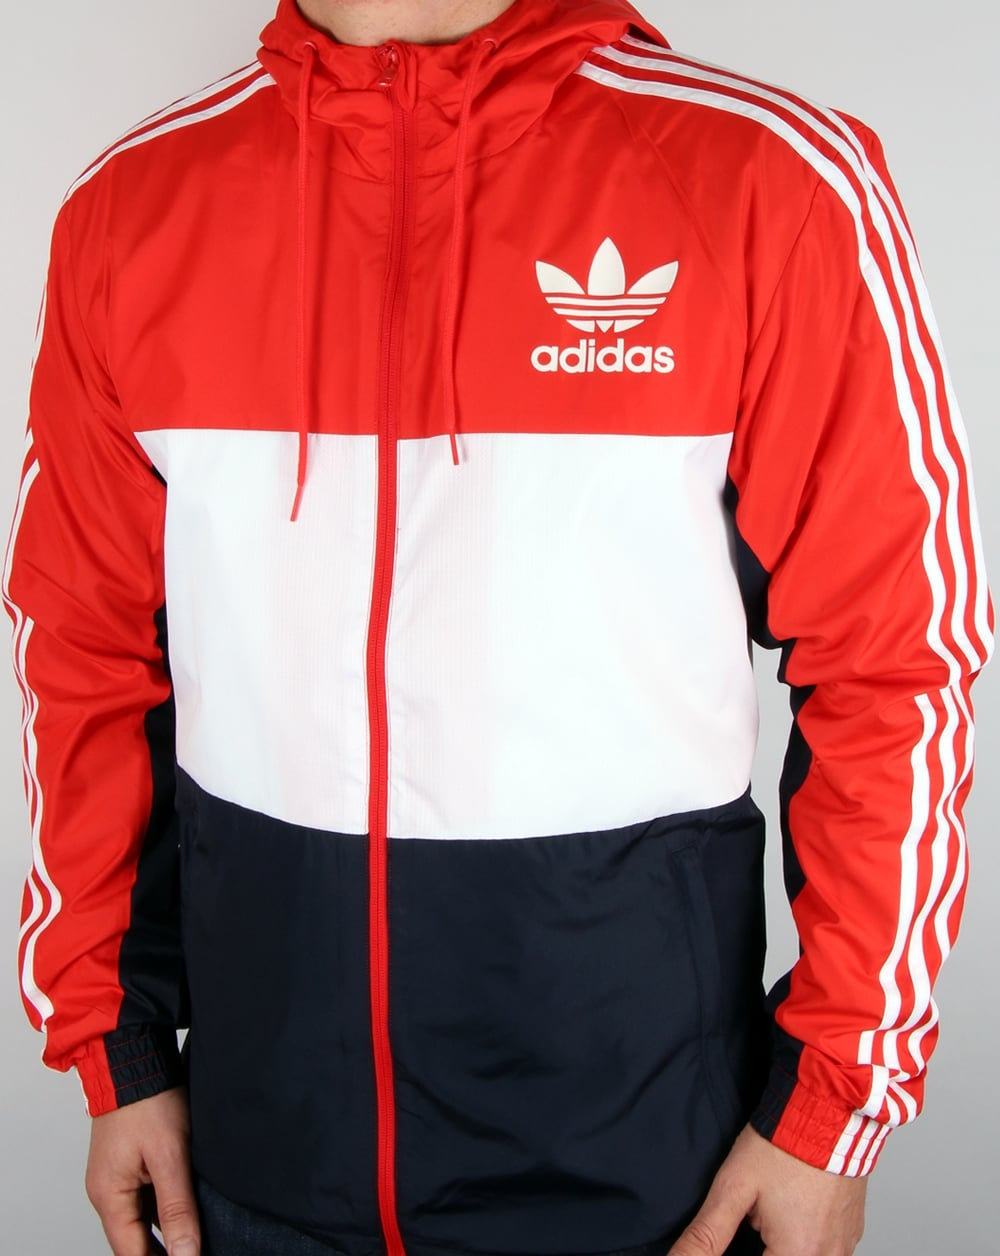 Men's Adidas Originals Windbreaker Jacket Vintage